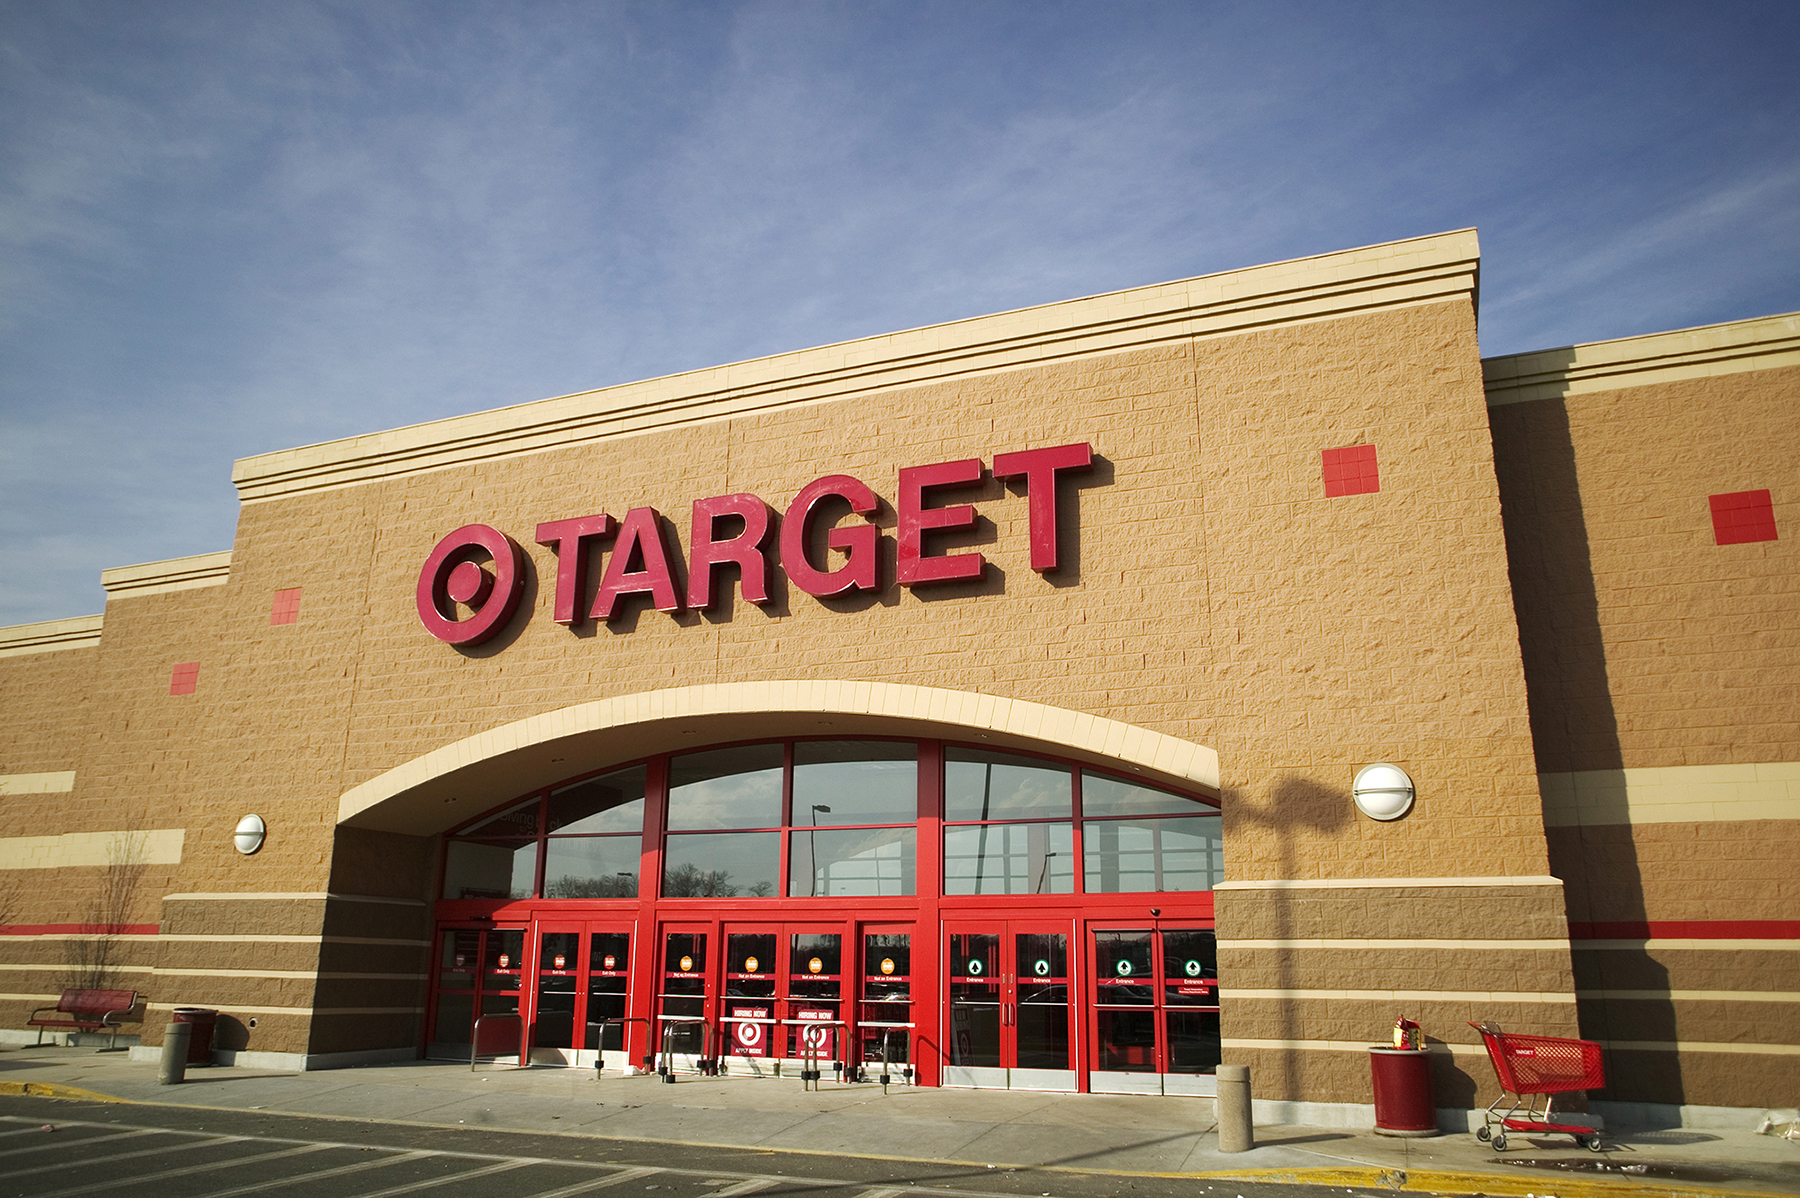 Teachers Can Get a Special Discount on School Supplies at Target For One Week Only